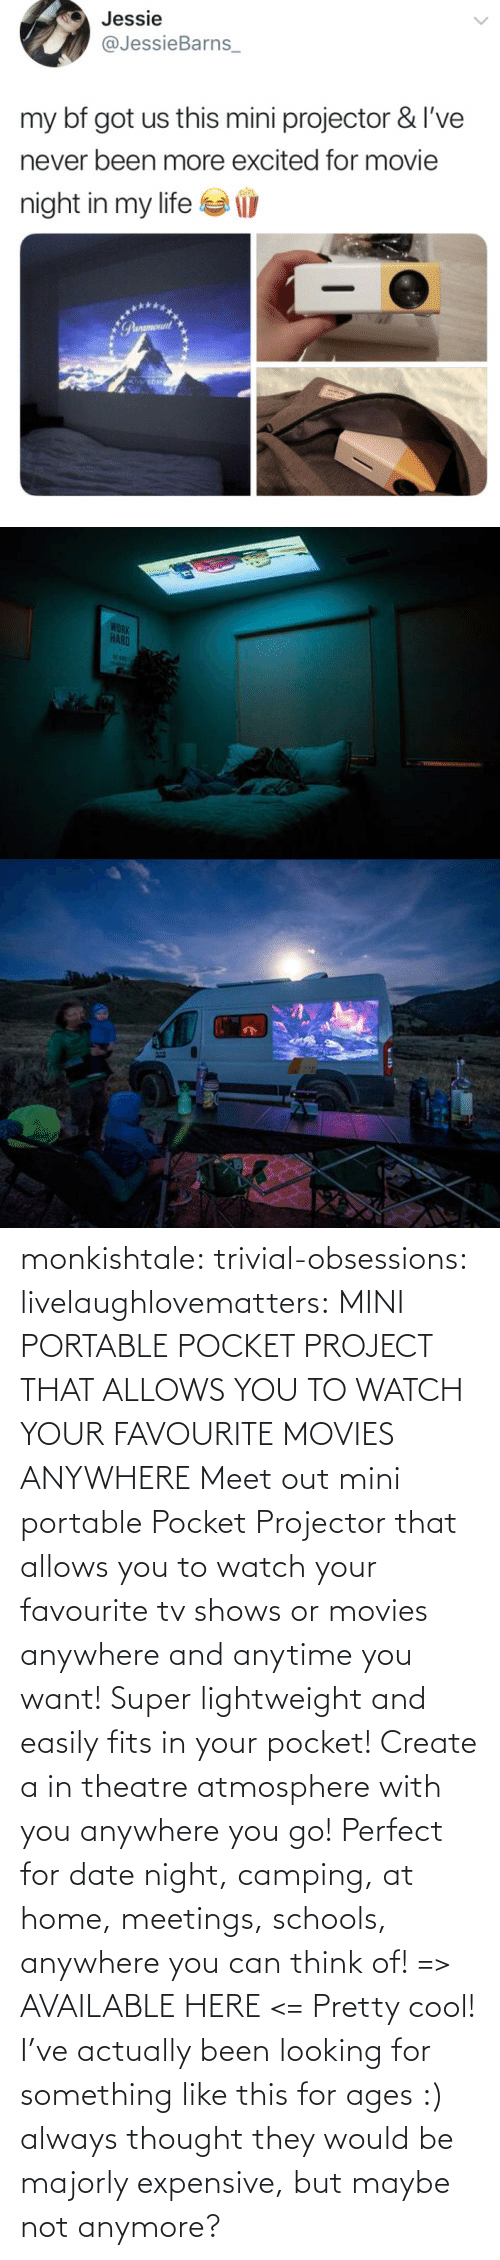 create a: monkishtale: trivial-obsessions:   livelaughlovematters:   MINI PORTABLE POCKET PROJECT THAT ALLOWS YOU TO WATCH YOUR FAVOURITE MOVIES ANYWHERE Meet out mini portable Pocket Projector that allows you to watch your favourite tv shows or movies anywhere and anytime you want! Super lightweight and easily fits in your pocket! Create a in theatre atmosphere with you anywhere you go! Perfect for date night, camping, at home, meetings, schools, anywhere you can think of! => AVAILABLE HERE <=    Pretty cool!    I've actually been looking for something like this for ages :) always thought they would be majorly expensive, but maybe not anymore?